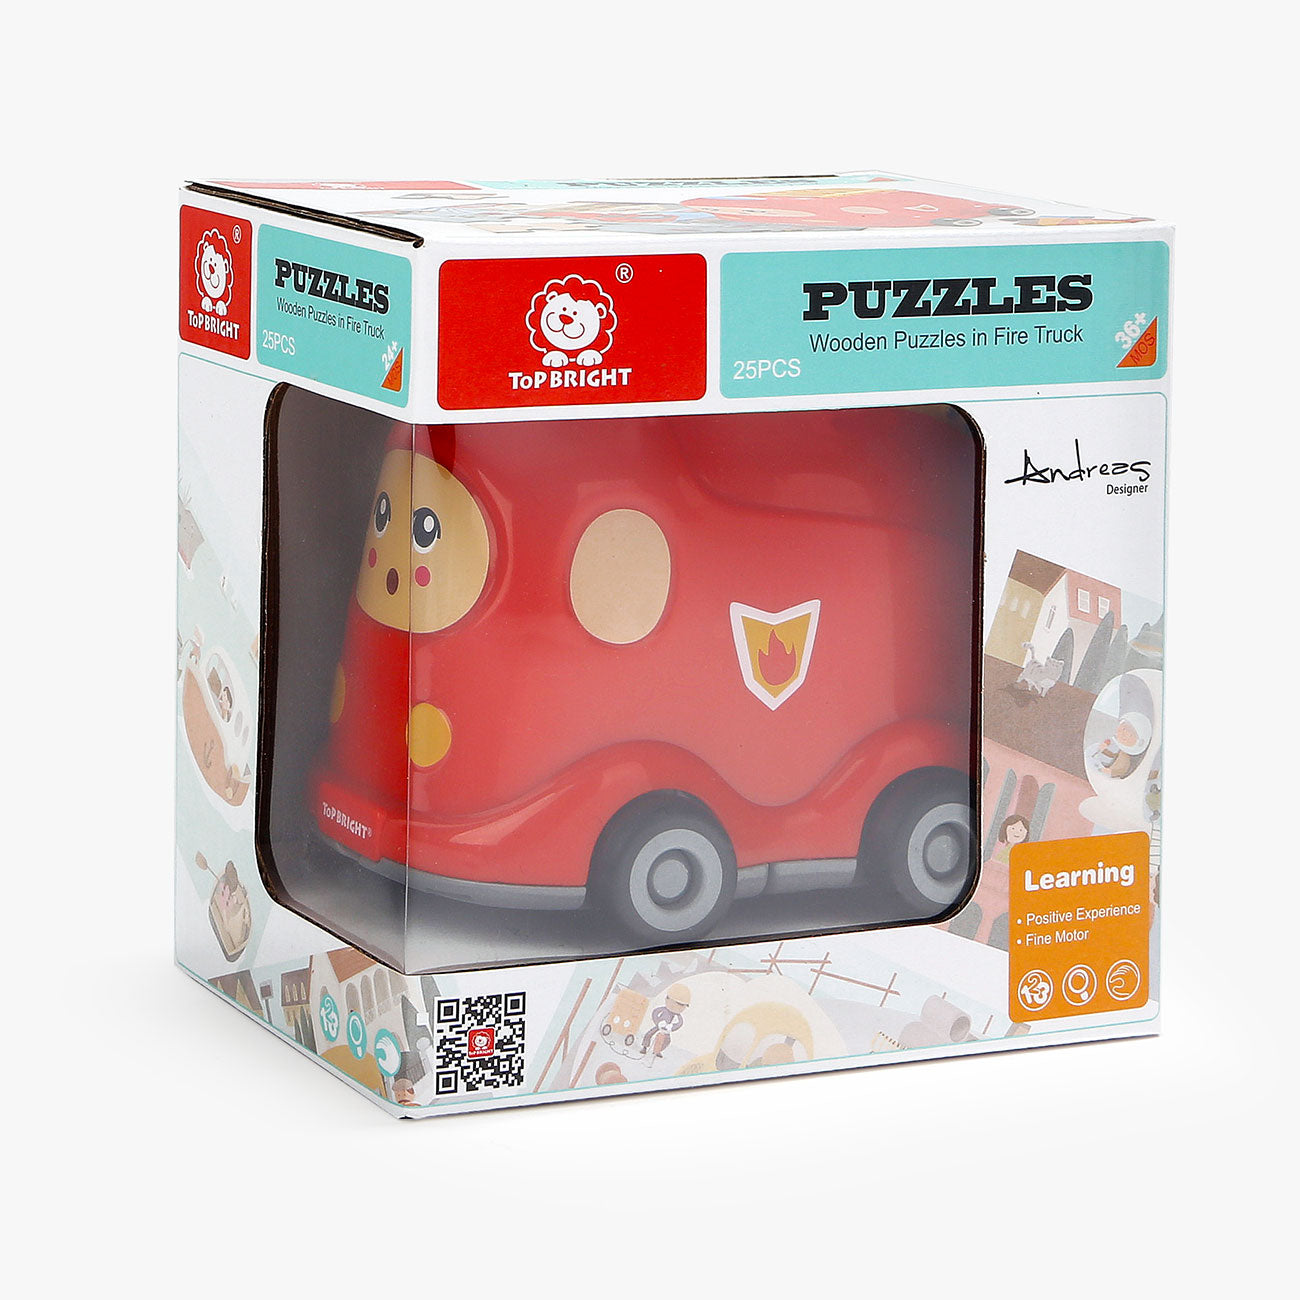 Wooden Puzzles in Fire Truck